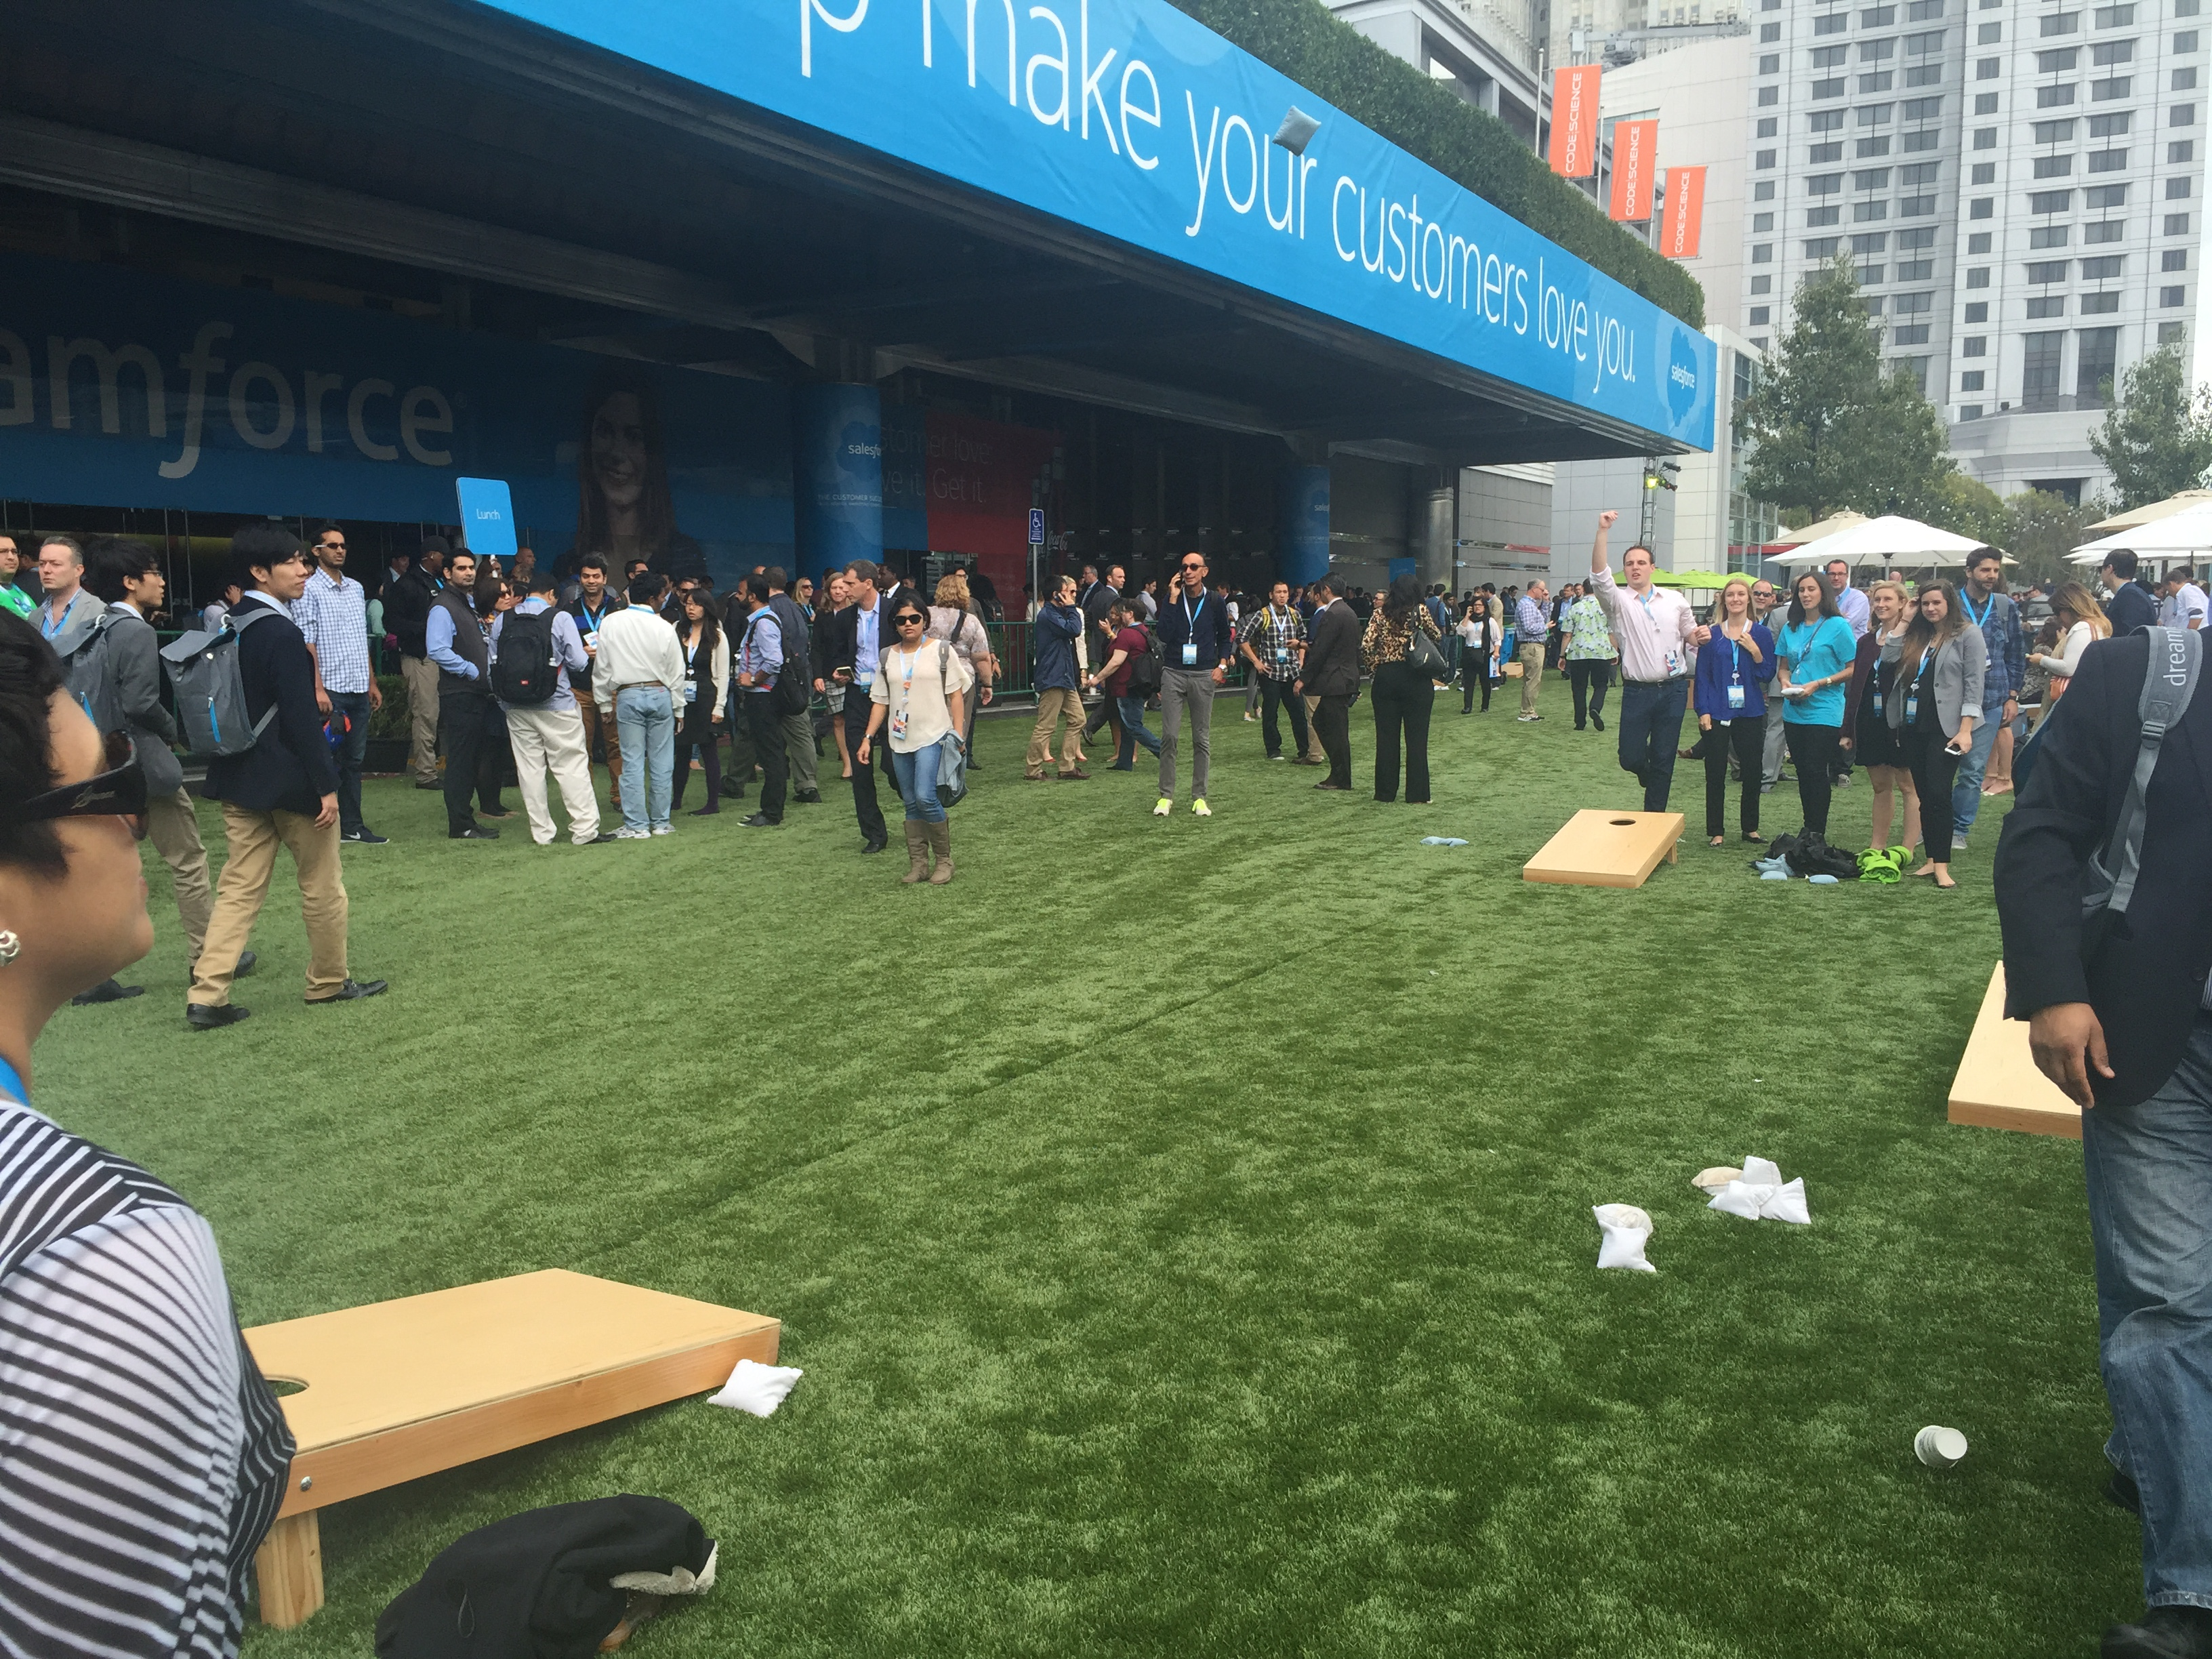 A vignette from Dreamforce, Salesforce's annual customer conference.